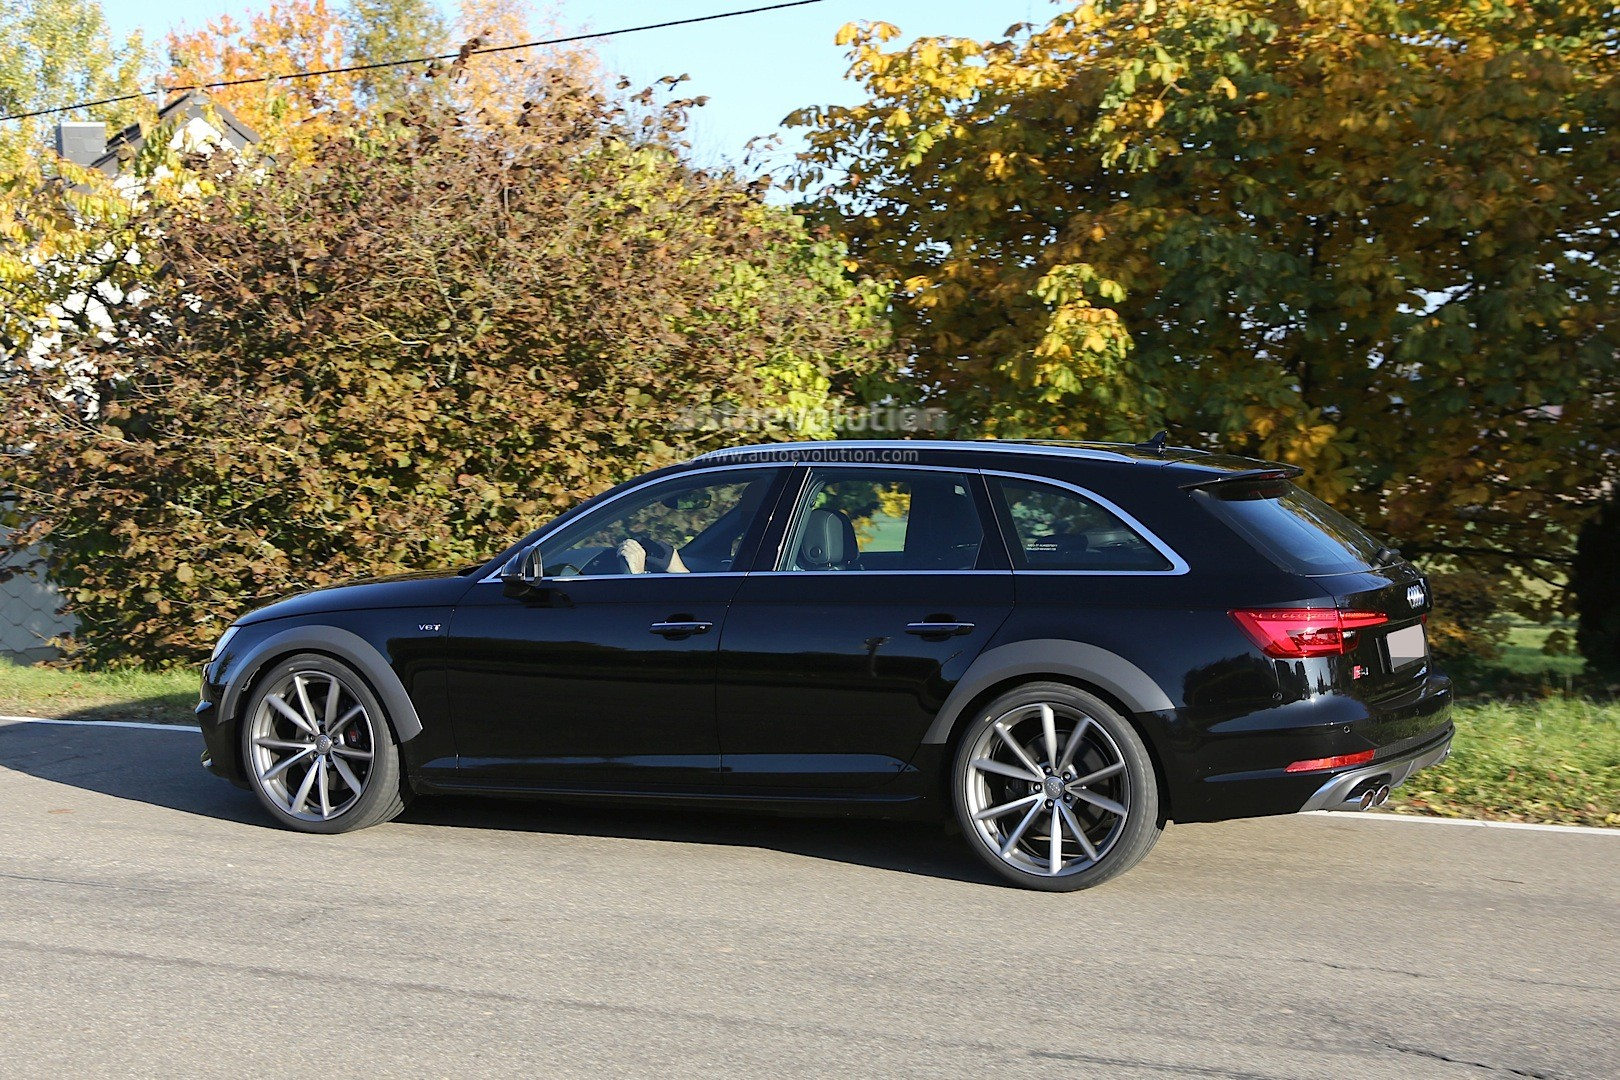 Audi Rs Q5 >> Early 2018 Audi RS4 Avant Chassis Testing Mule: This Could Be It - autoevolution